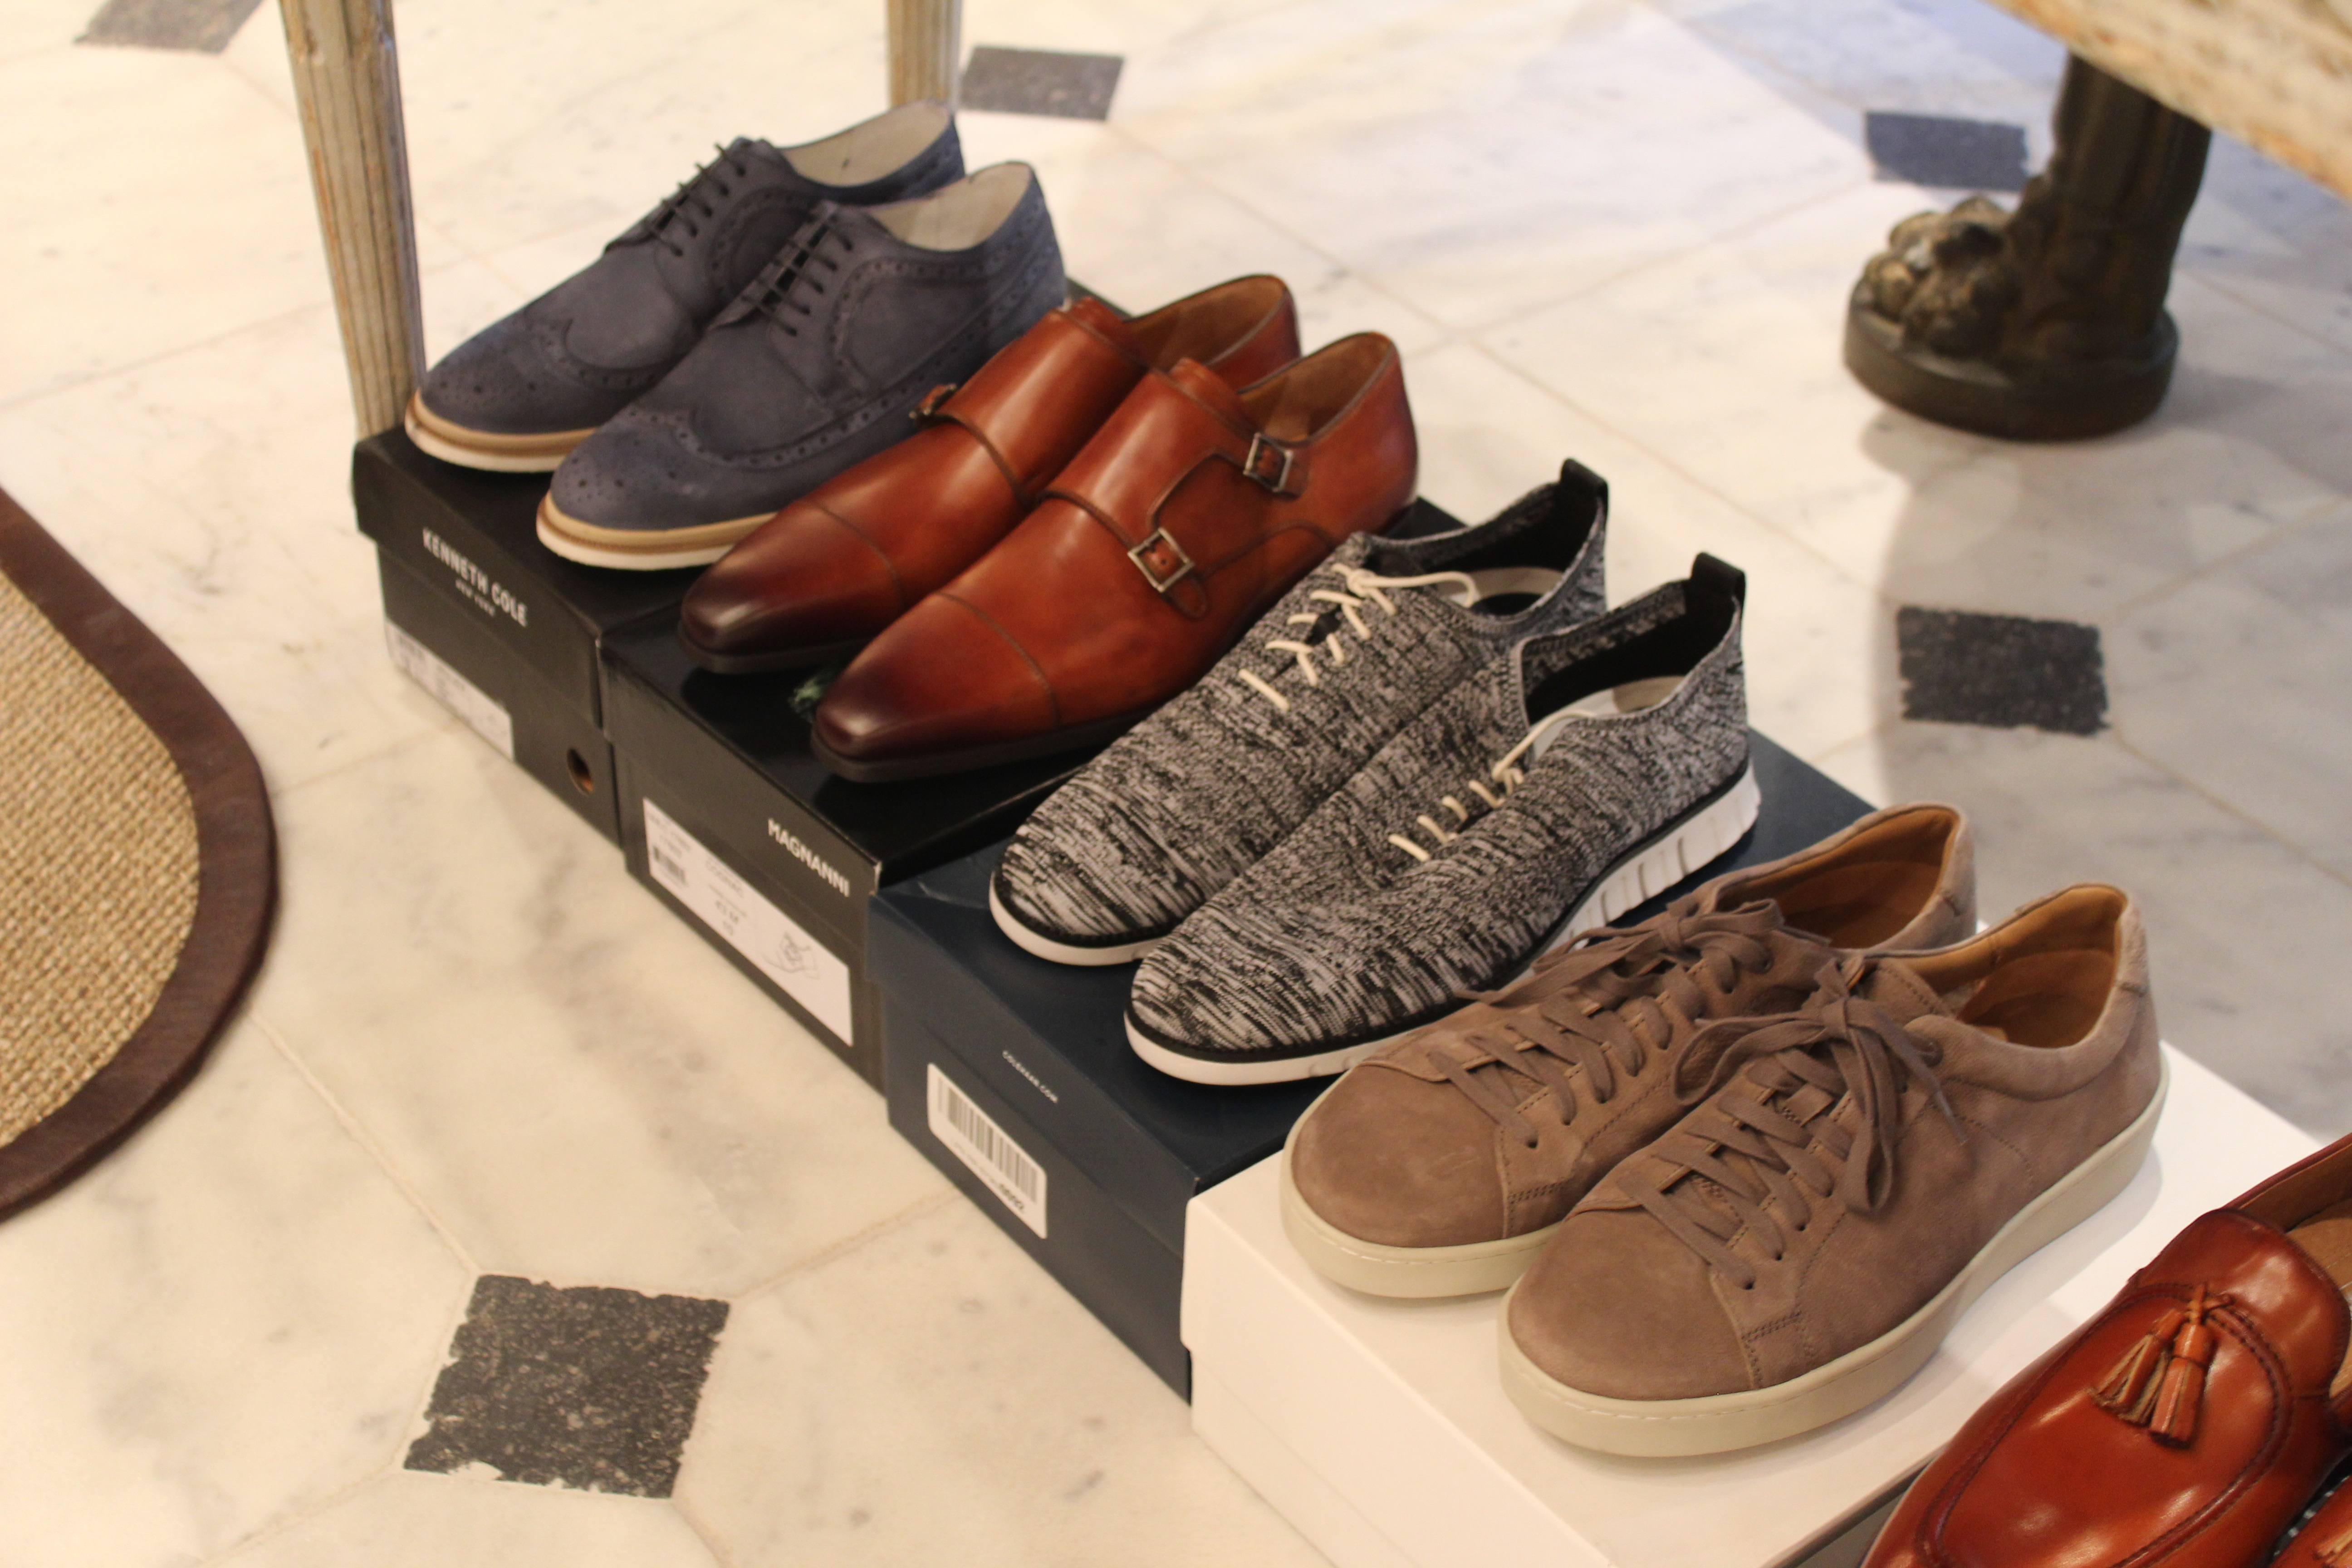 Men's Personal Shopping, Personal Fitting, shoe shopping, shoe fitting